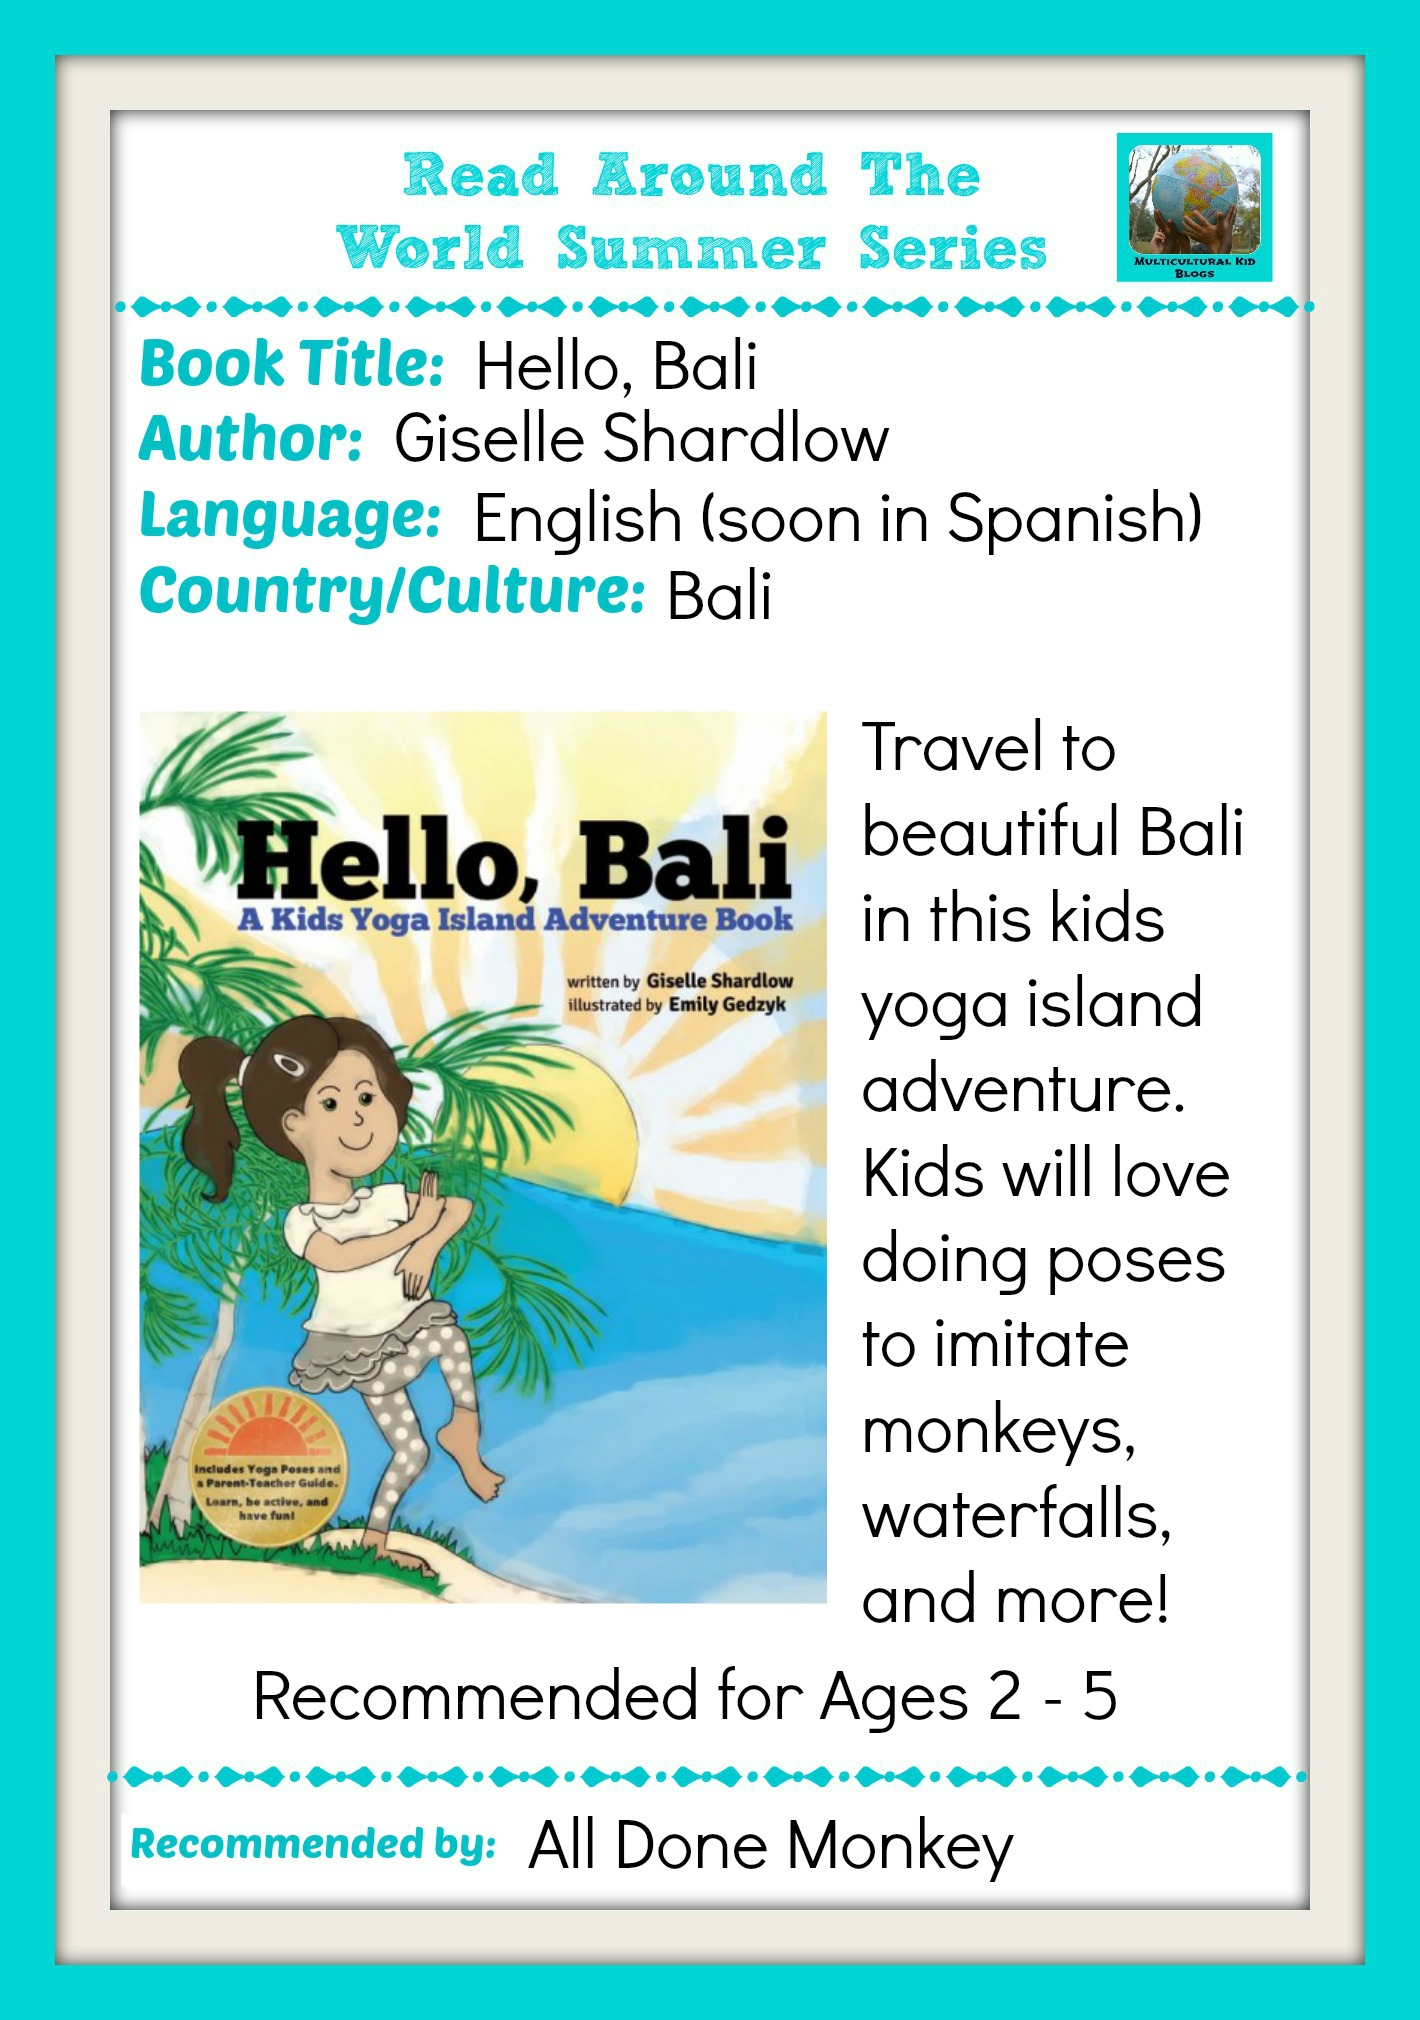 Learn About Bali With A Kids Yoga Island Adventure Book